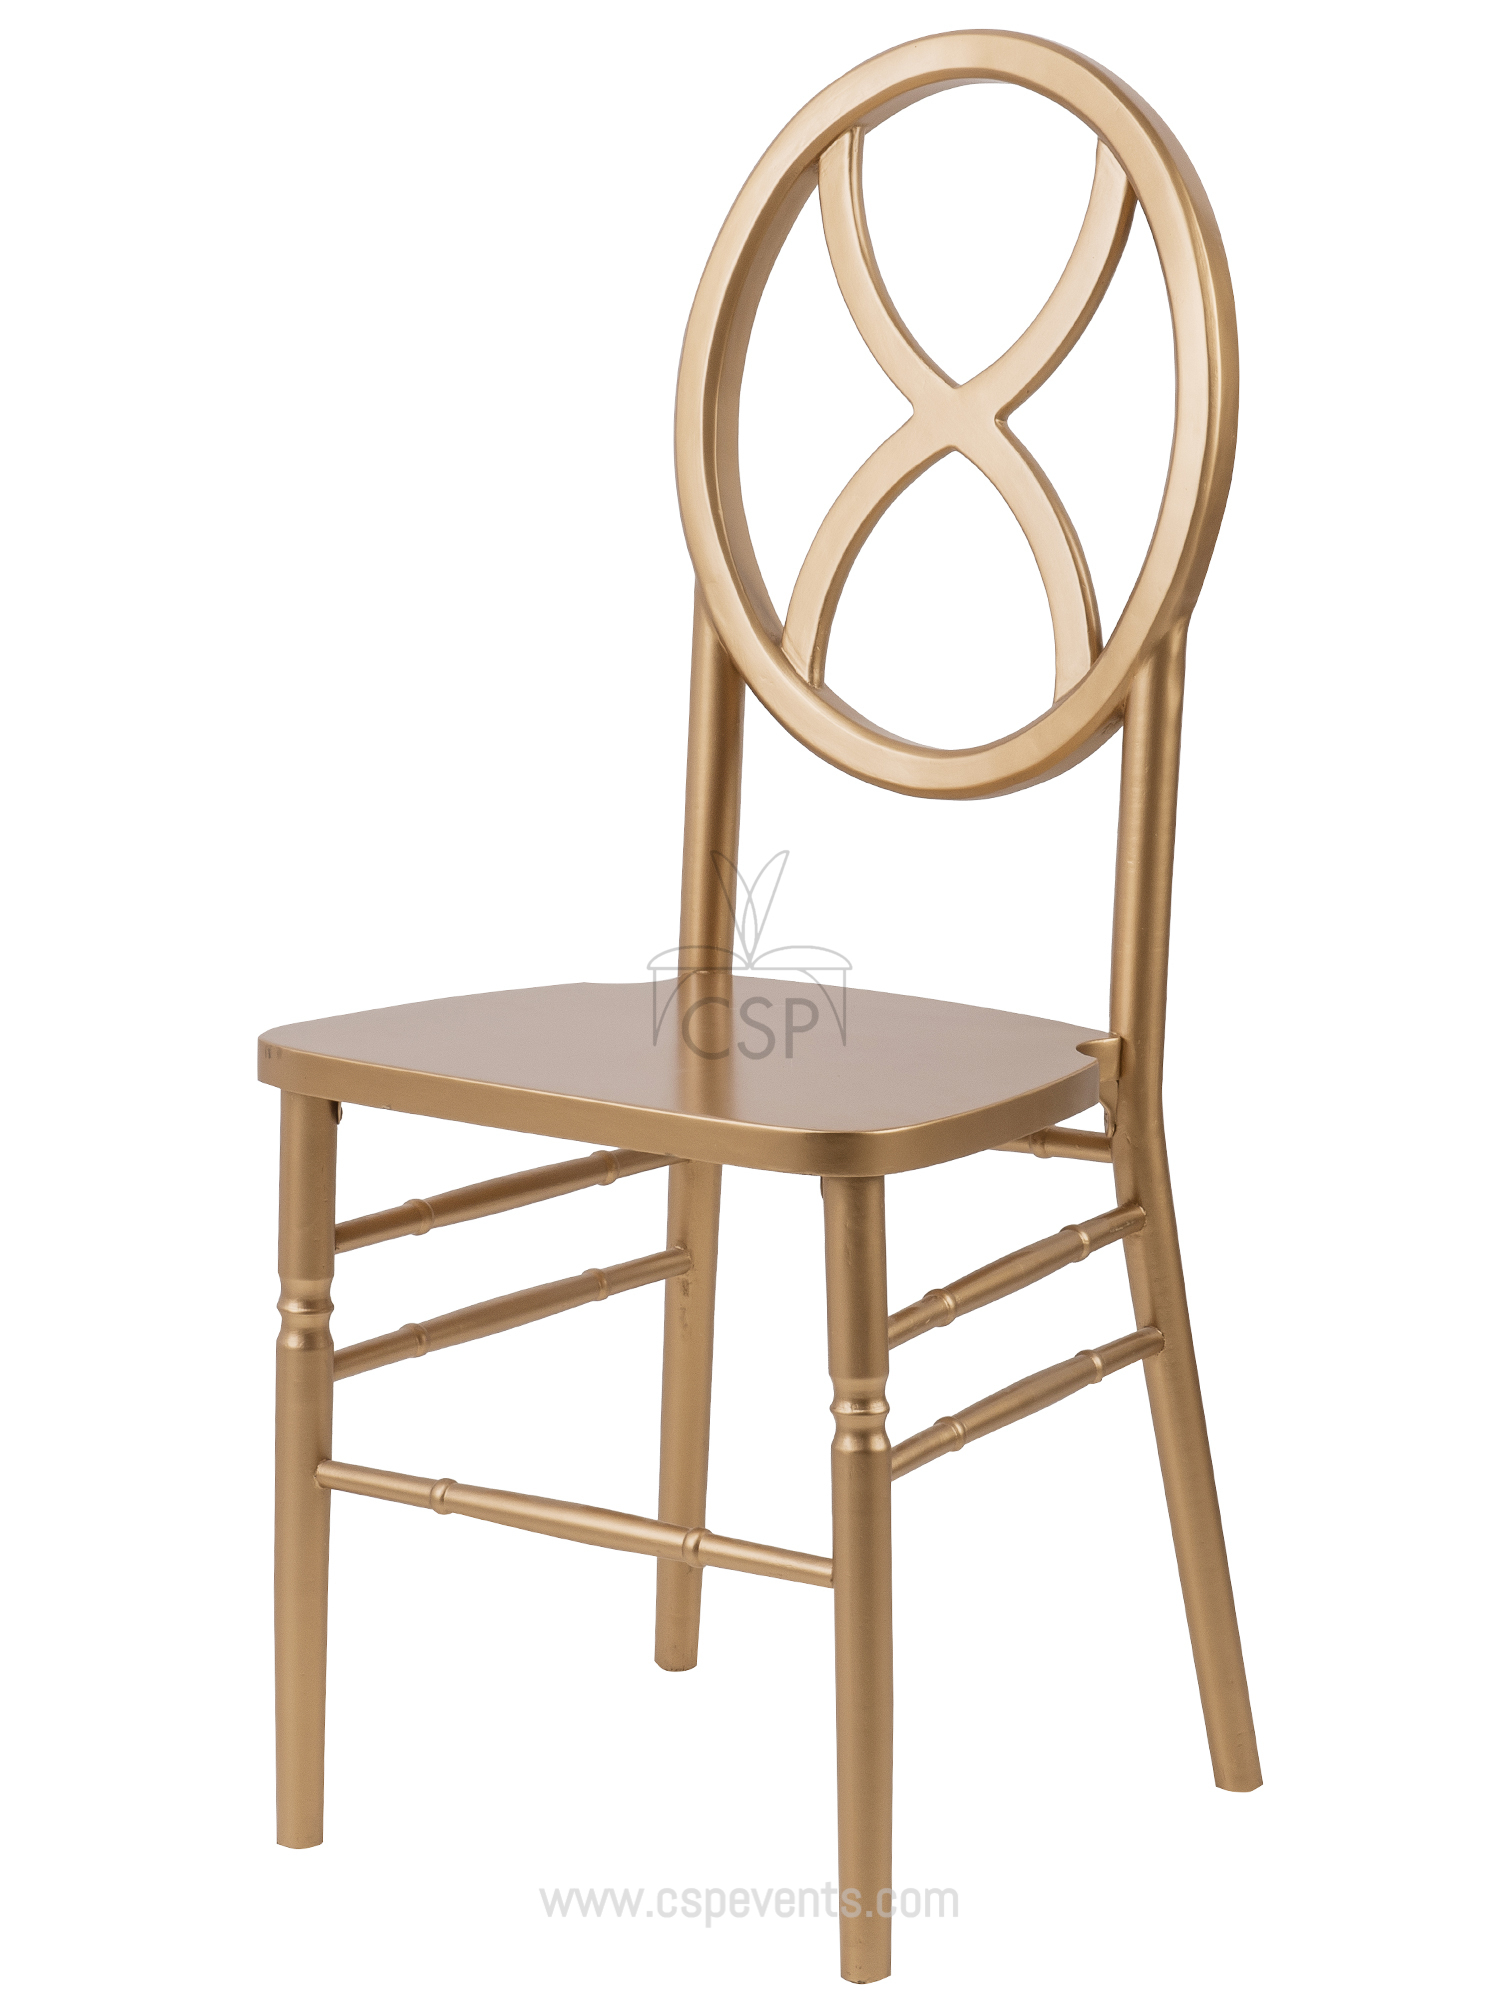 swivel chair vr rentals in ct commercial seating products chiavari chairs